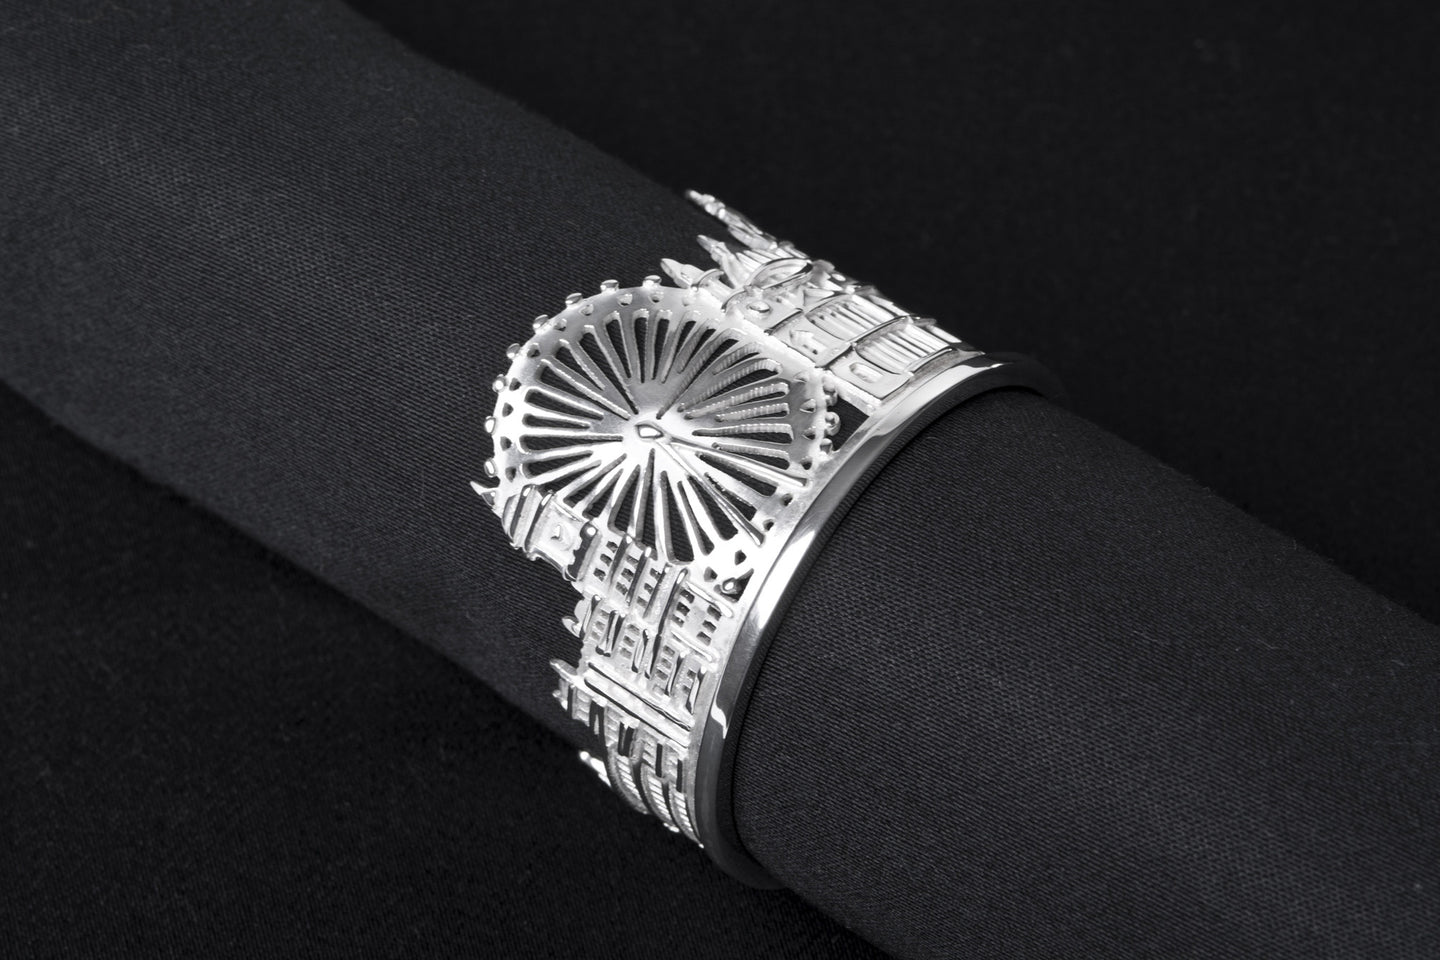 Silver London Skyline London Eye Napkin Ring by Jen Ricketts